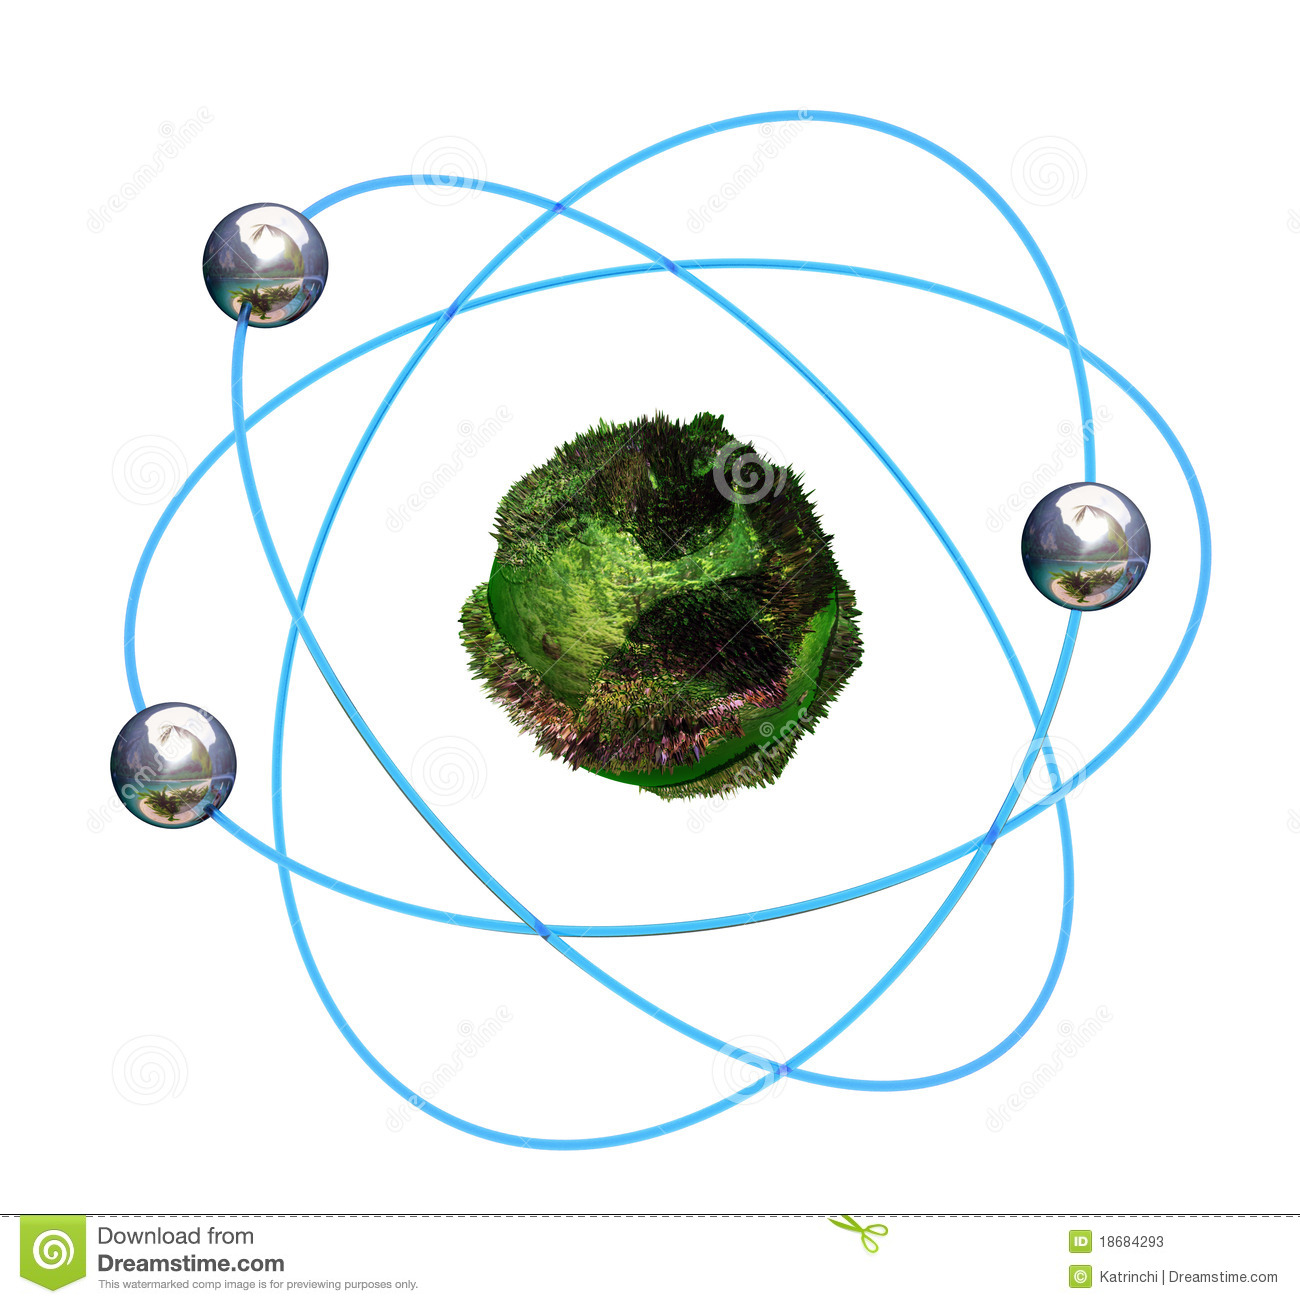 3d Atomic Diagram All Kind Of Wiring Diagrams Oxygen Atom Structure Stock Photo Green With Blue Orbitals Photos Image 18684293 Element